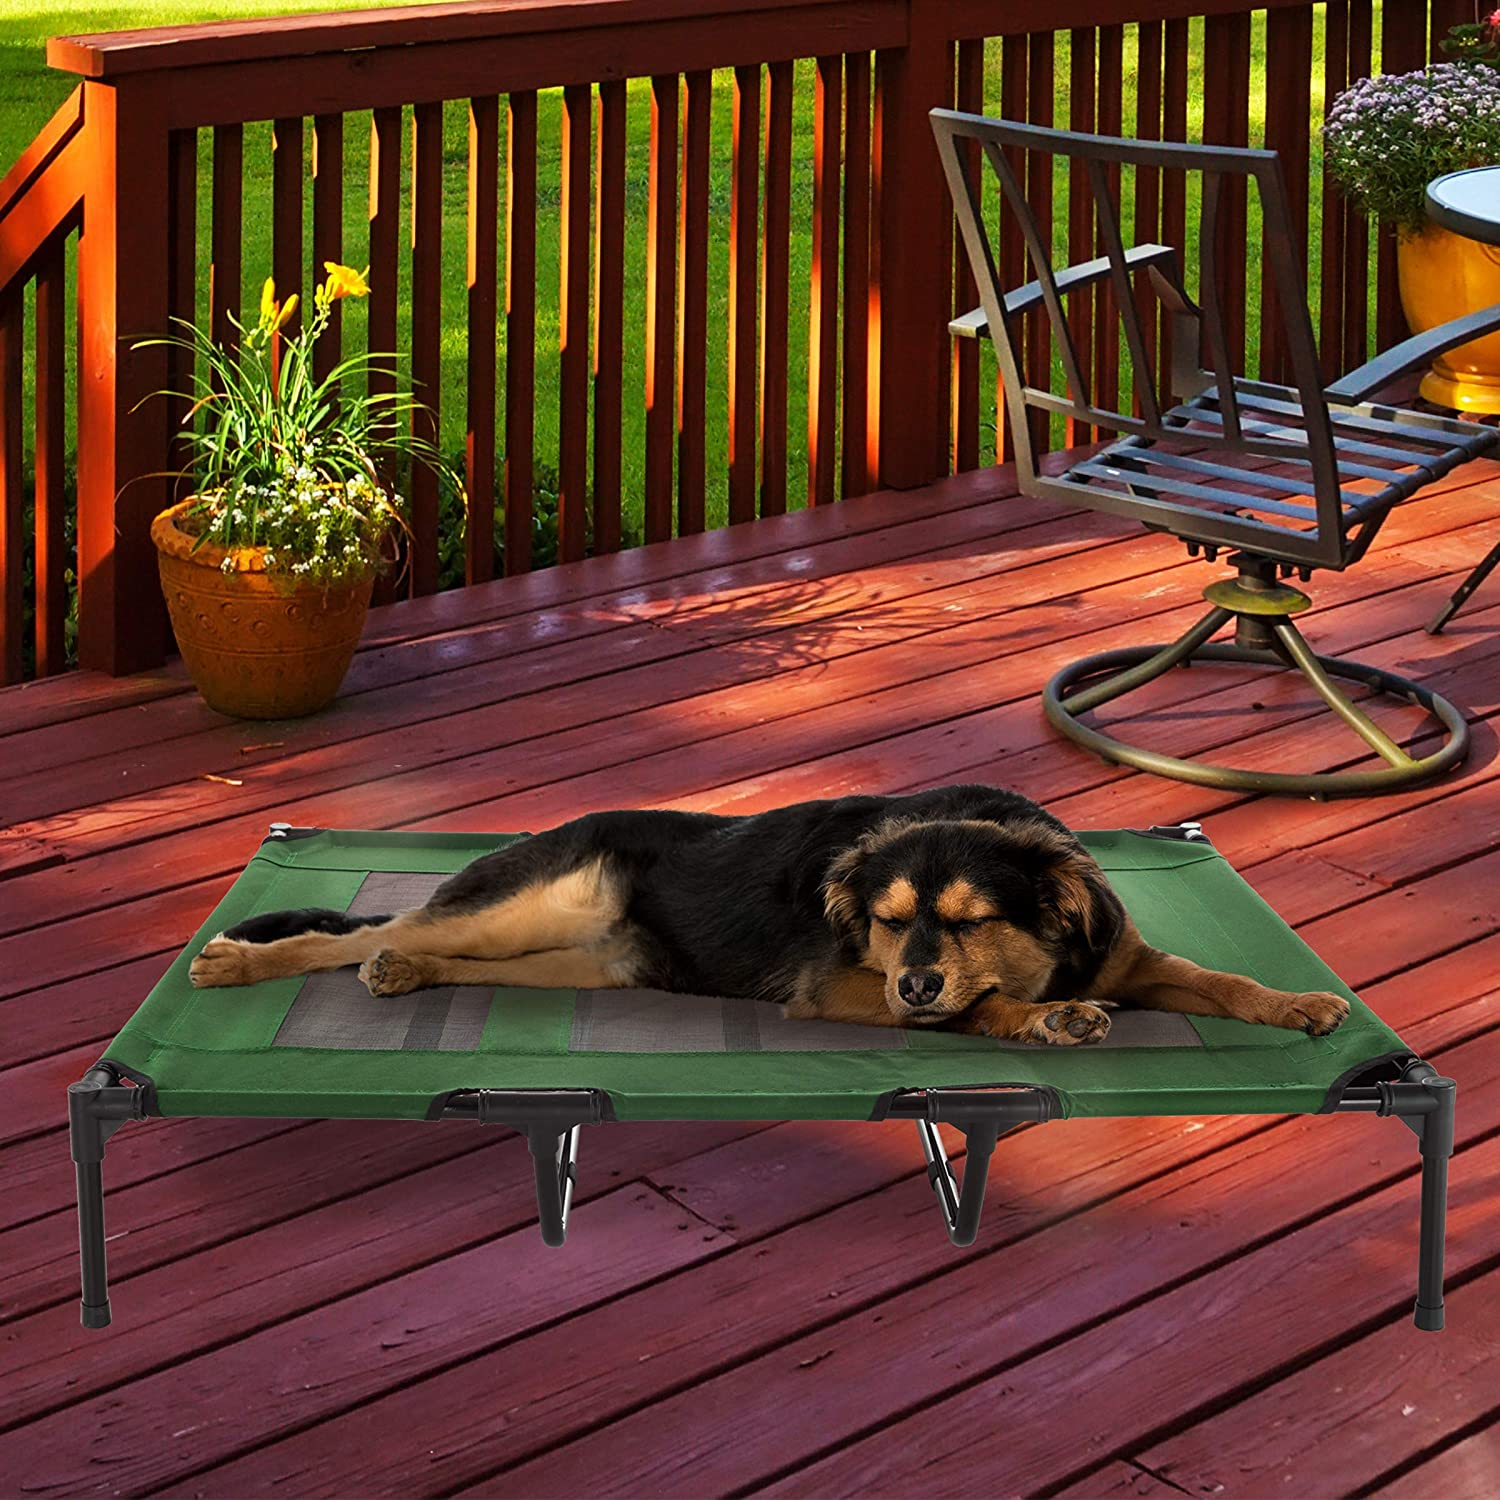 "Petmaker Elevated Pet BedPortable Raised CotStyle Bed W  NonSlip Feet, 48""x 35.5""x 9"" for Dogs, Cats, or Small PetsIndoor Outdoor Use (Green)"